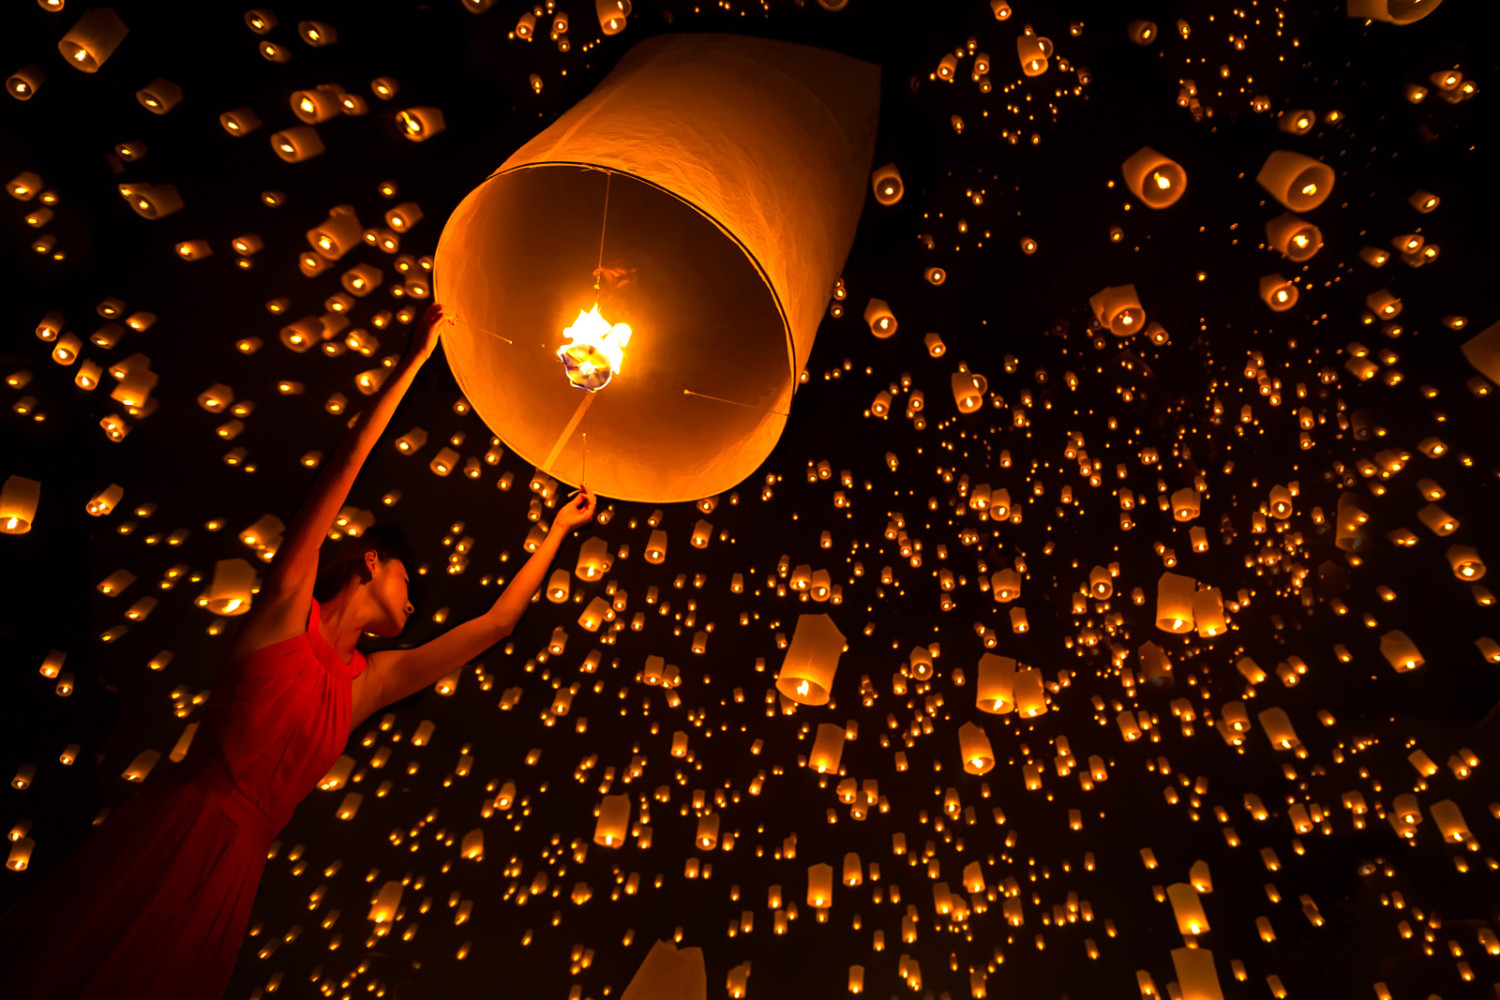 100Pcs Orange Paper Chinese Lanterns Sky Fly Candle Lamp for Wish Party Wedding